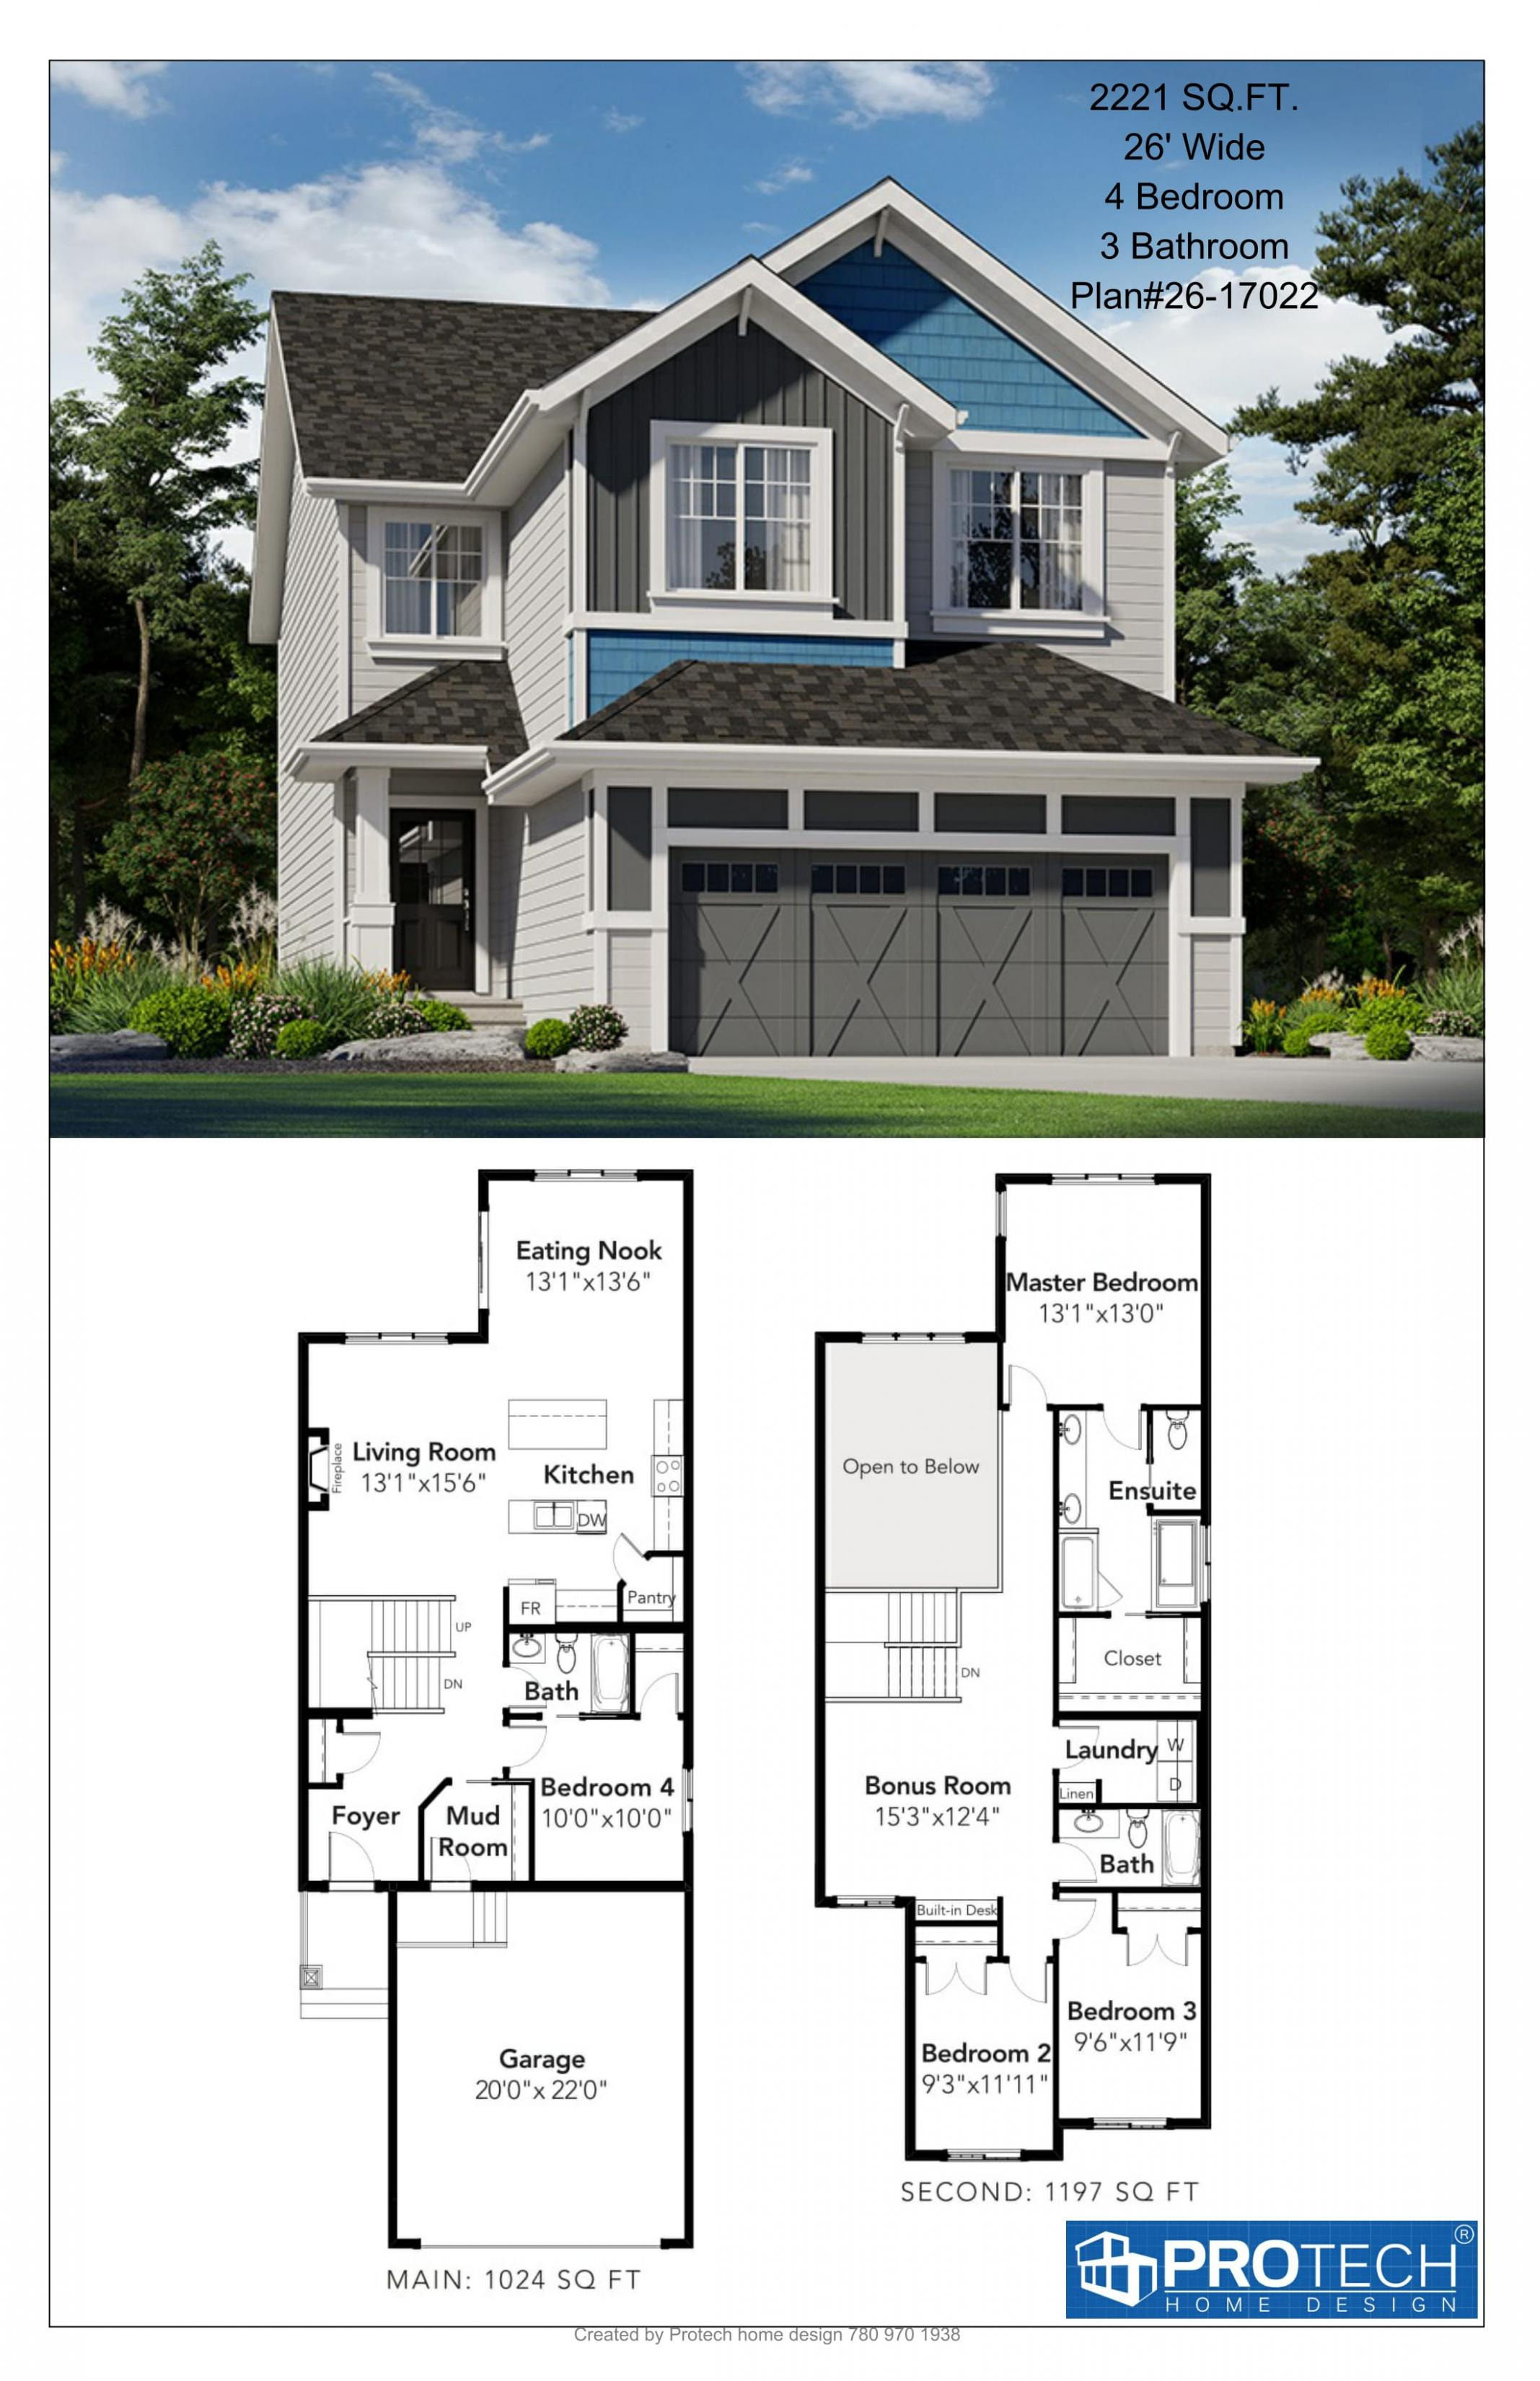 9 Bedroom House Plans Beautiful Stock Plans